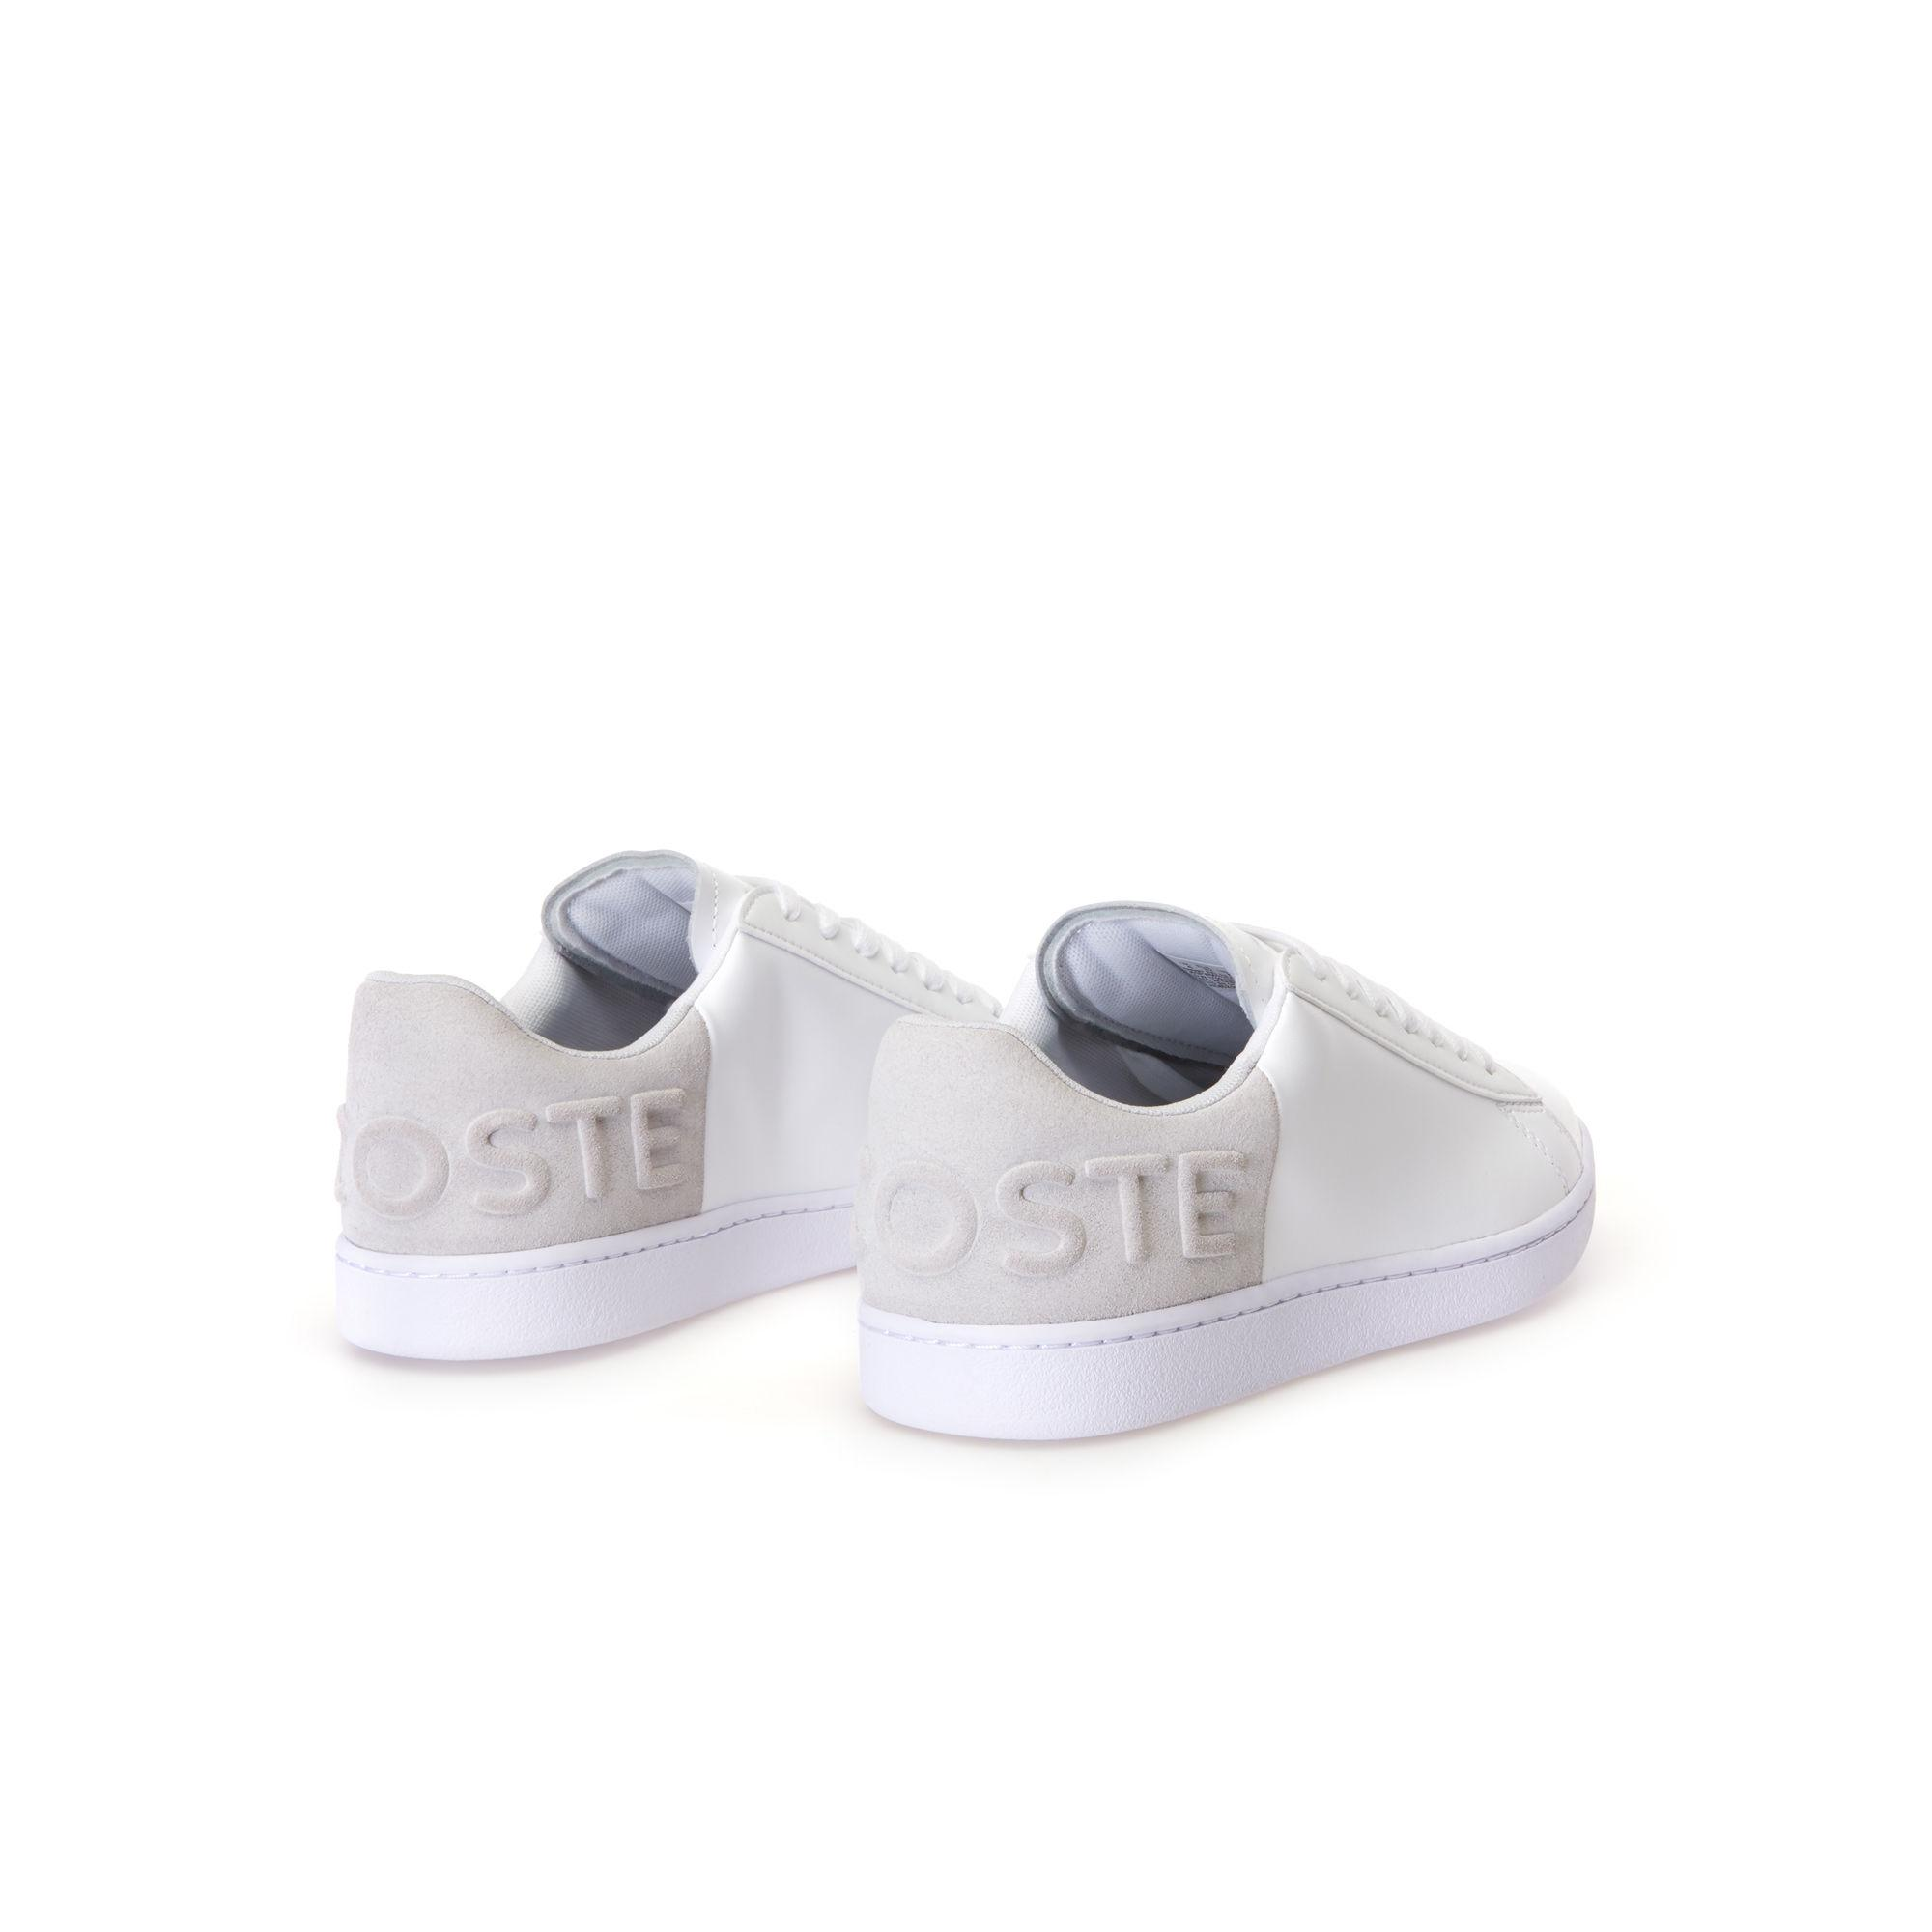 7653a568a8 Lacoste White Carnaby Evo Colourblock Leather Trainers